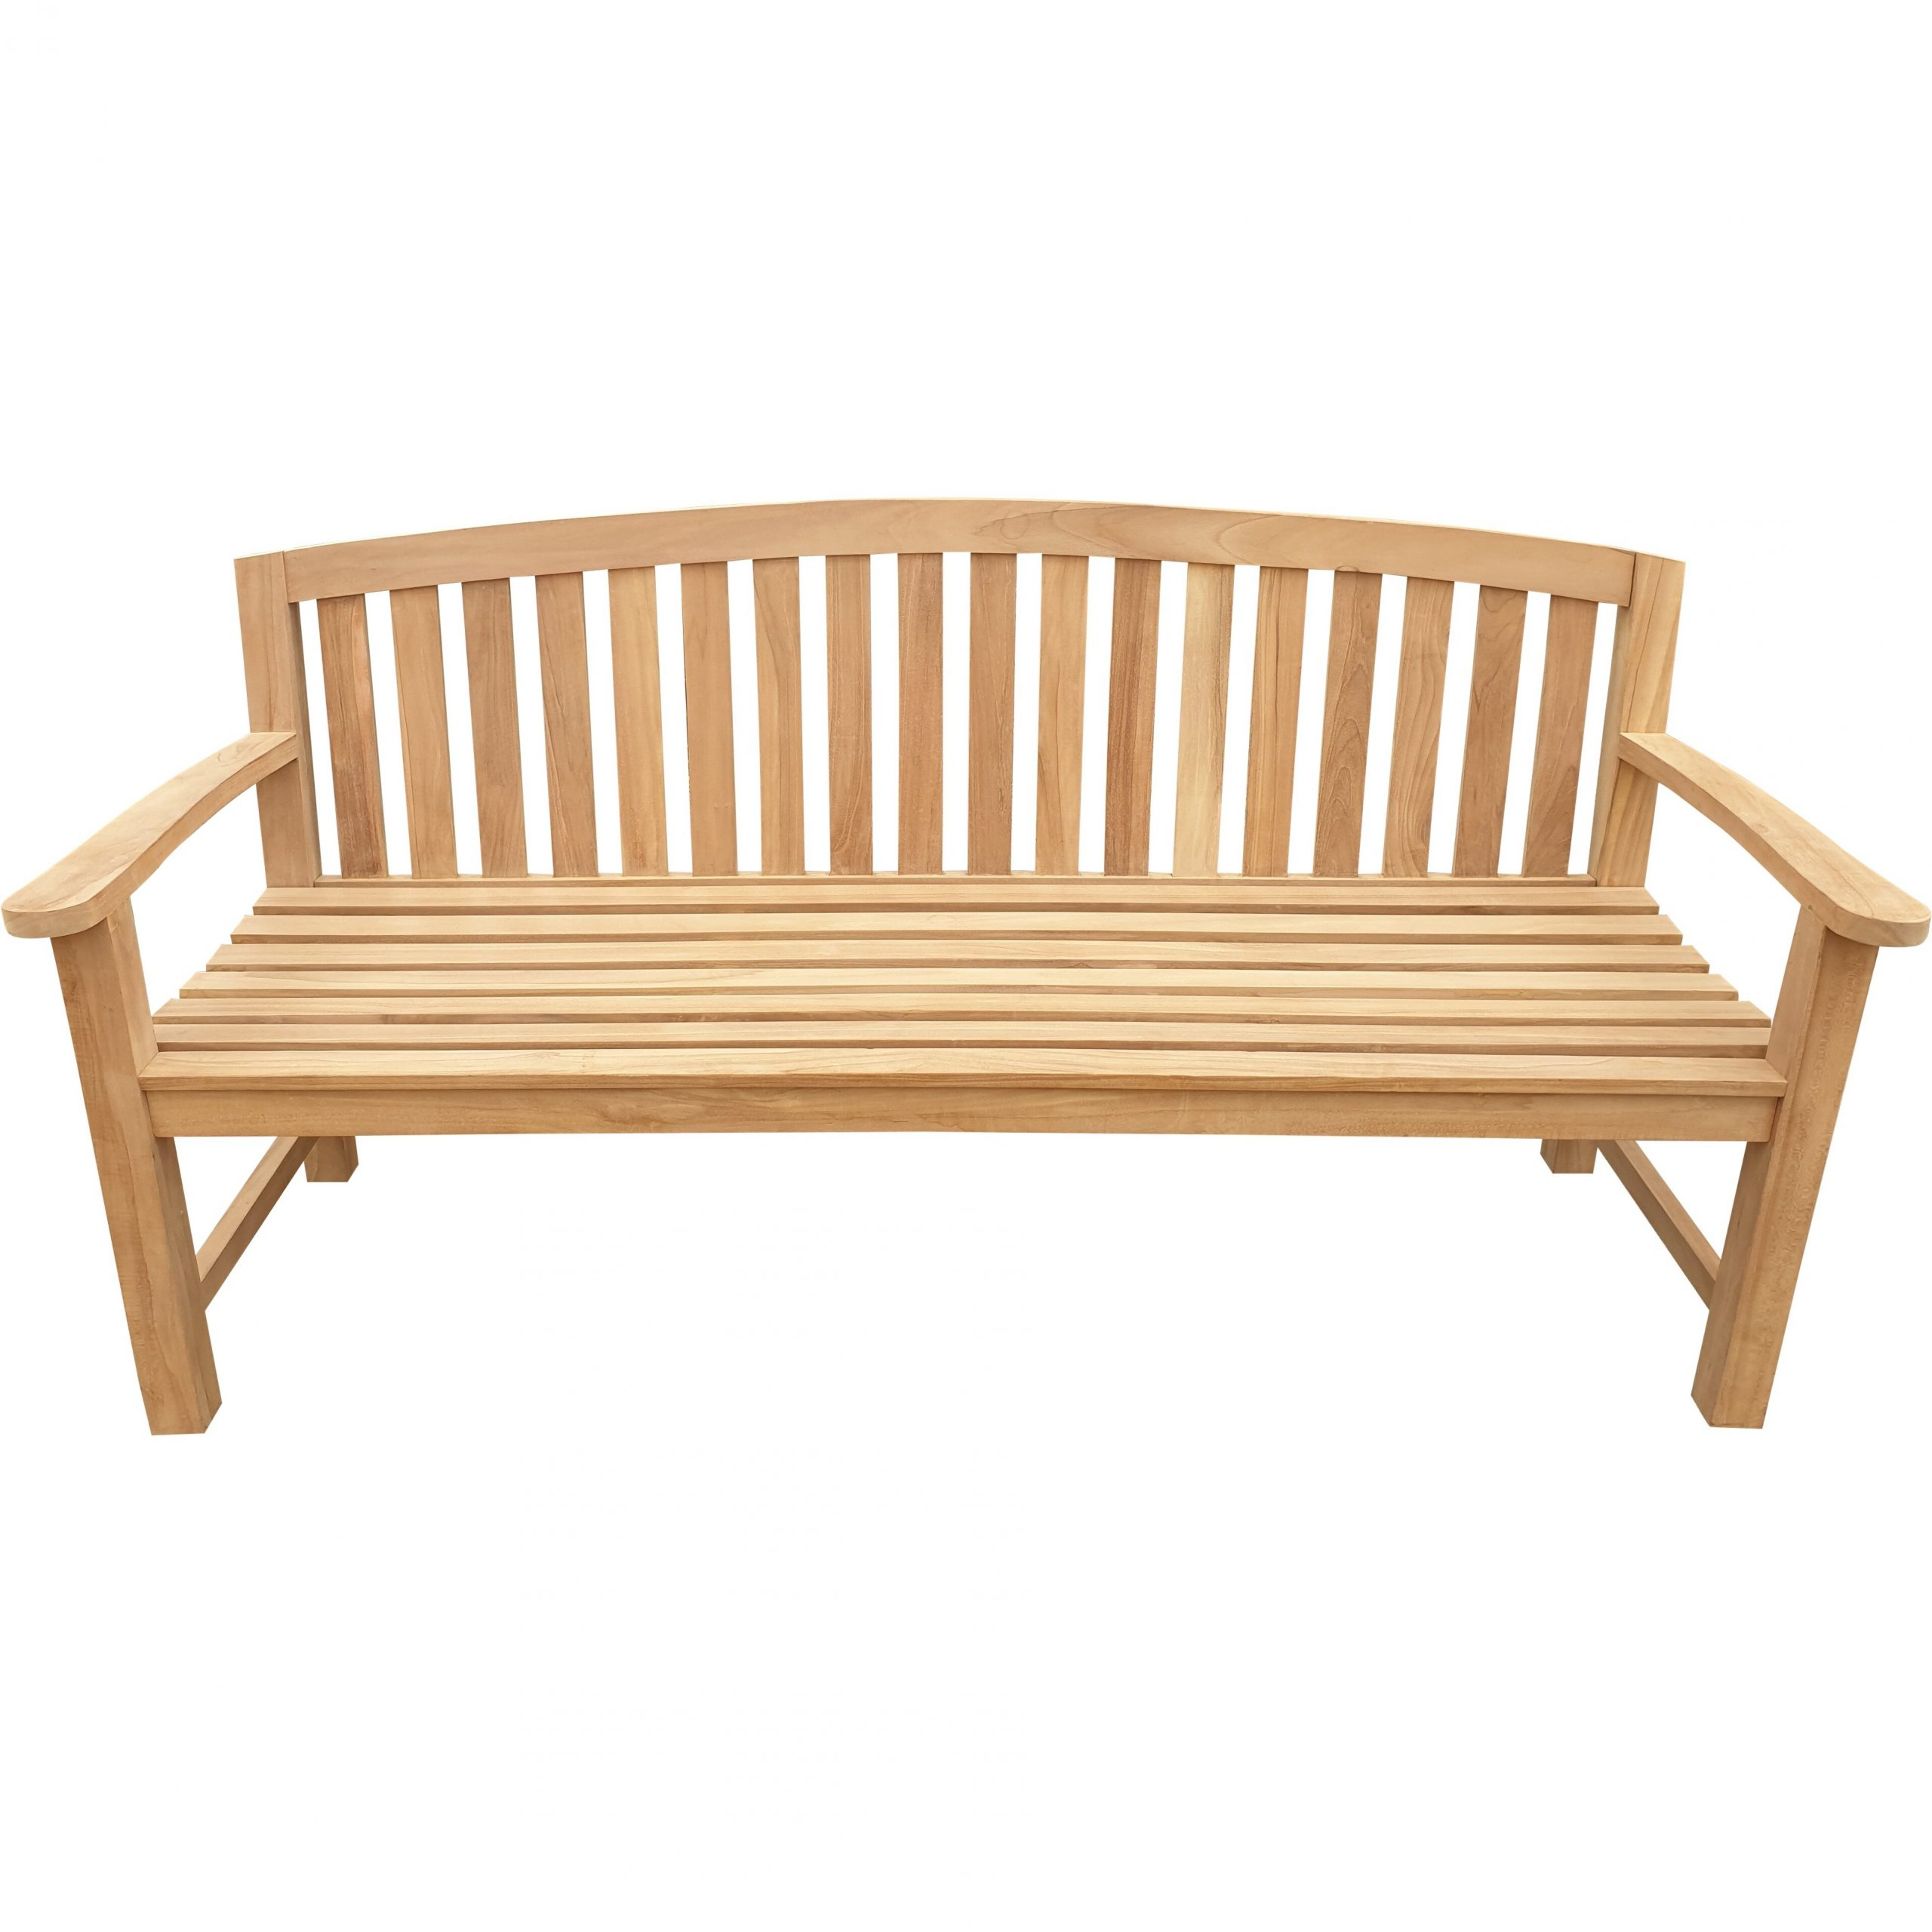 Well Known Lublin Wicker Tete A Tete Benches Within Cato Solid Wood Garden Bench (View 28 of 30)